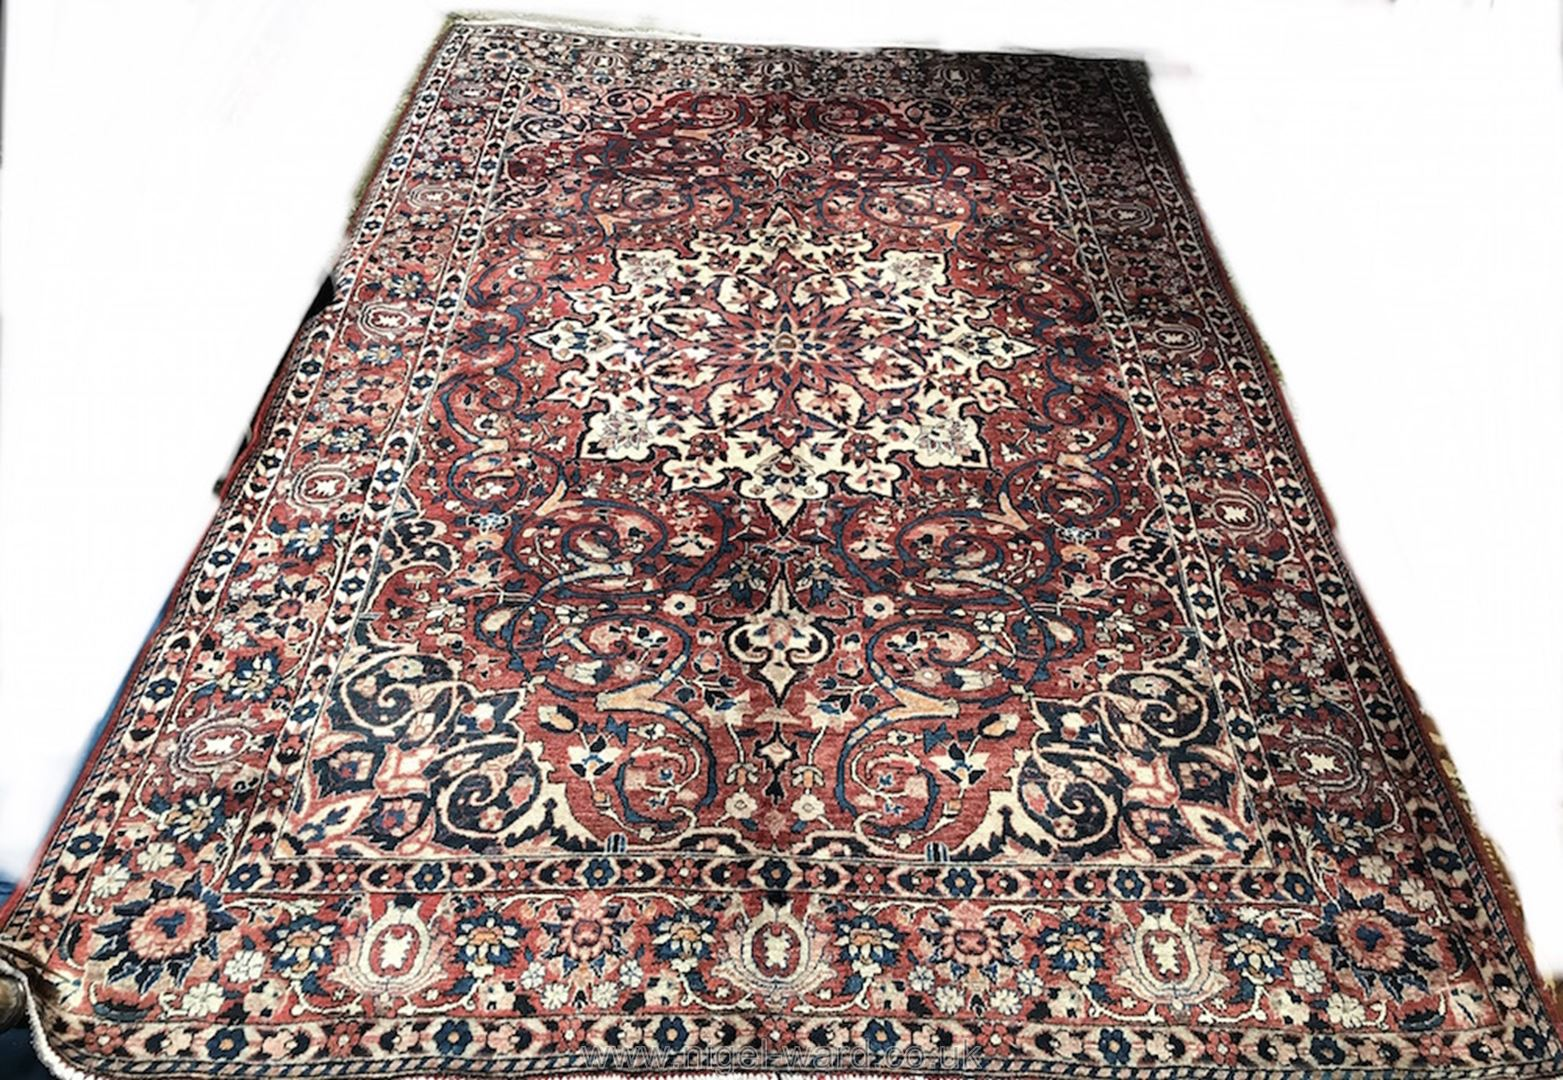 Lot 1060 - A large hand-made Kerman Carpet,